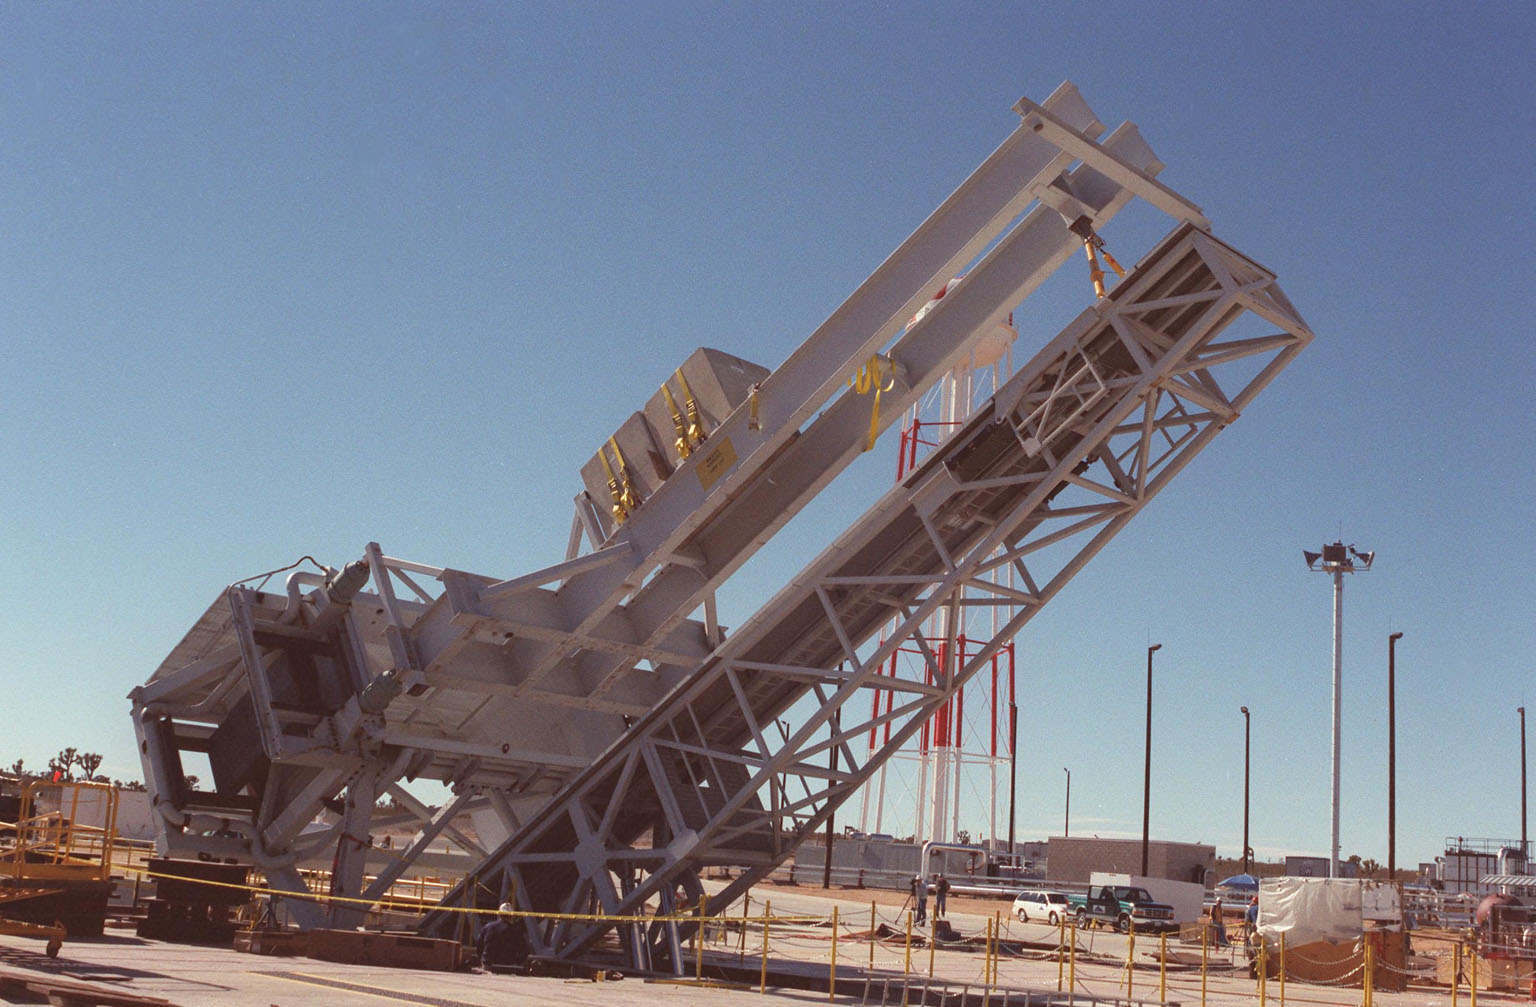 """As part of X-33 launch equipment testing at Edwards Air Force Base, CA, the KSC-developed X-33 weight simulator (top), known as the """"iron bird,"""" is lifted to a vertical position at the X-33 launch site. The simulator matches the 75,000-pound weight and 63-foot height of the X-33 vehicle that will be using the launch equipment. KSC's Vehicle Positioning System (VPS) placed the simulator on the rotating launch platform prior to the rotation. The new VPS will dramatically reduce the amount of manual labor required to position a reusable launch vehicle for liftoff"""